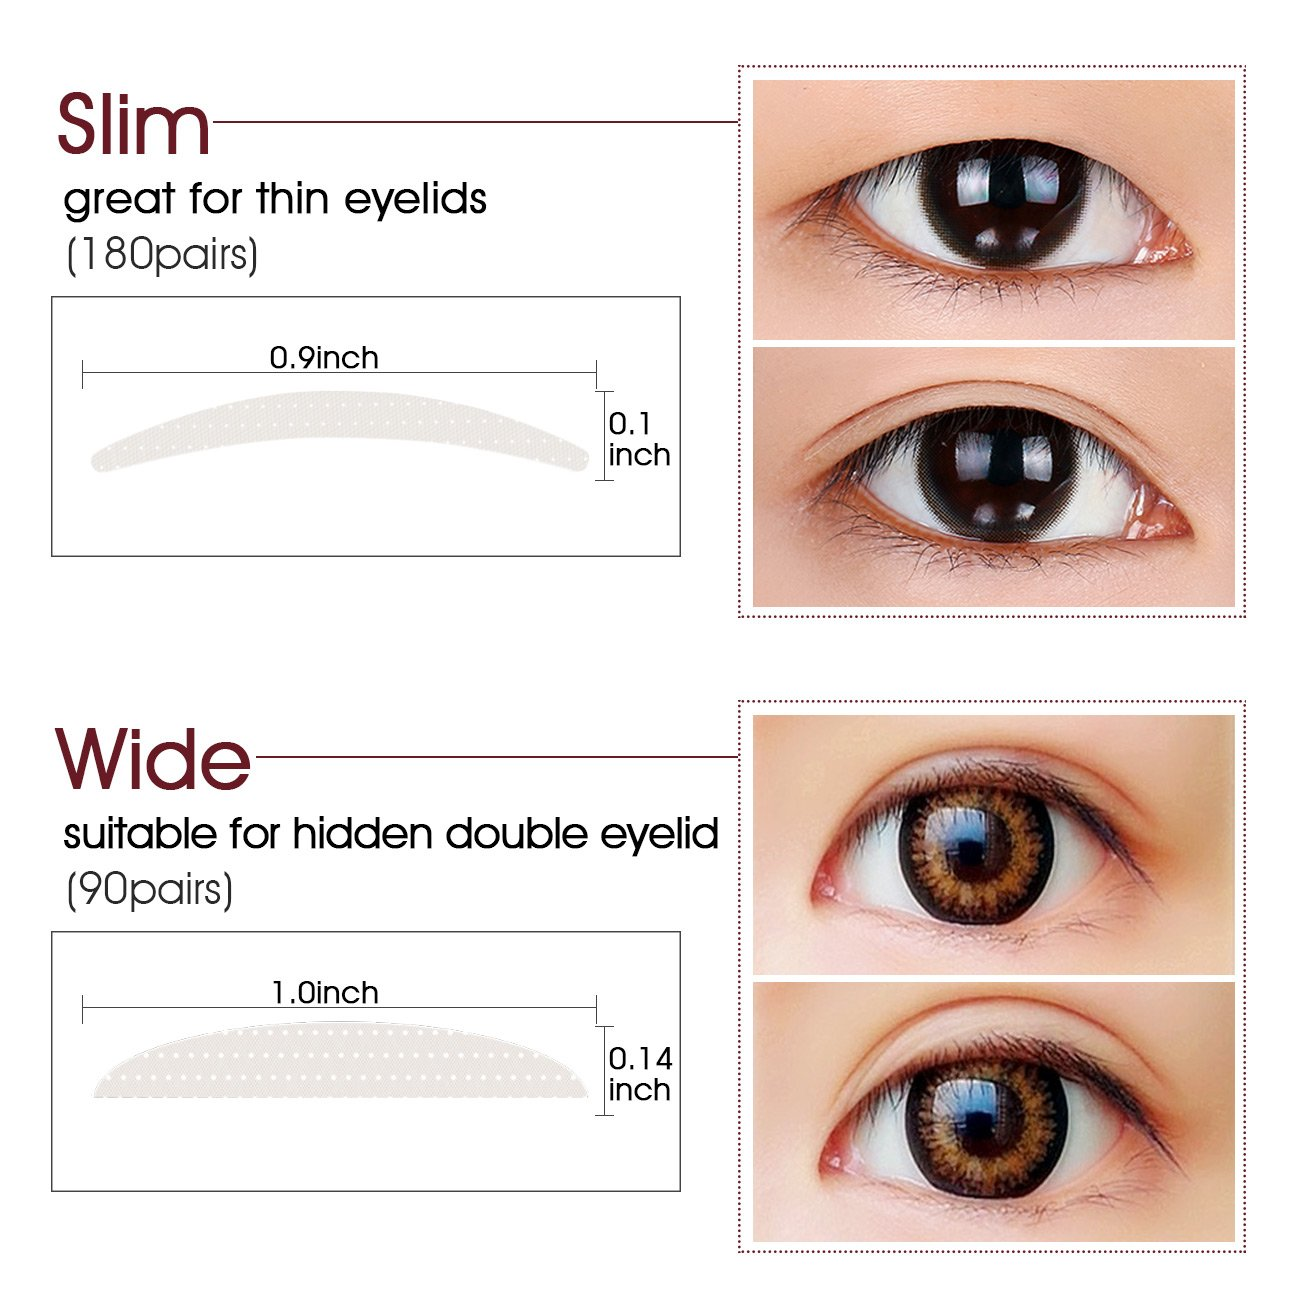 Natural Invisible Fiber Double Eyelid Tape Stickers - Instant Eye Lift Without Surgery - Perfect for Hooded, Droopy, Uneven, or Mono-eyelids (270 Pair, Wide + Slim) by Lameila